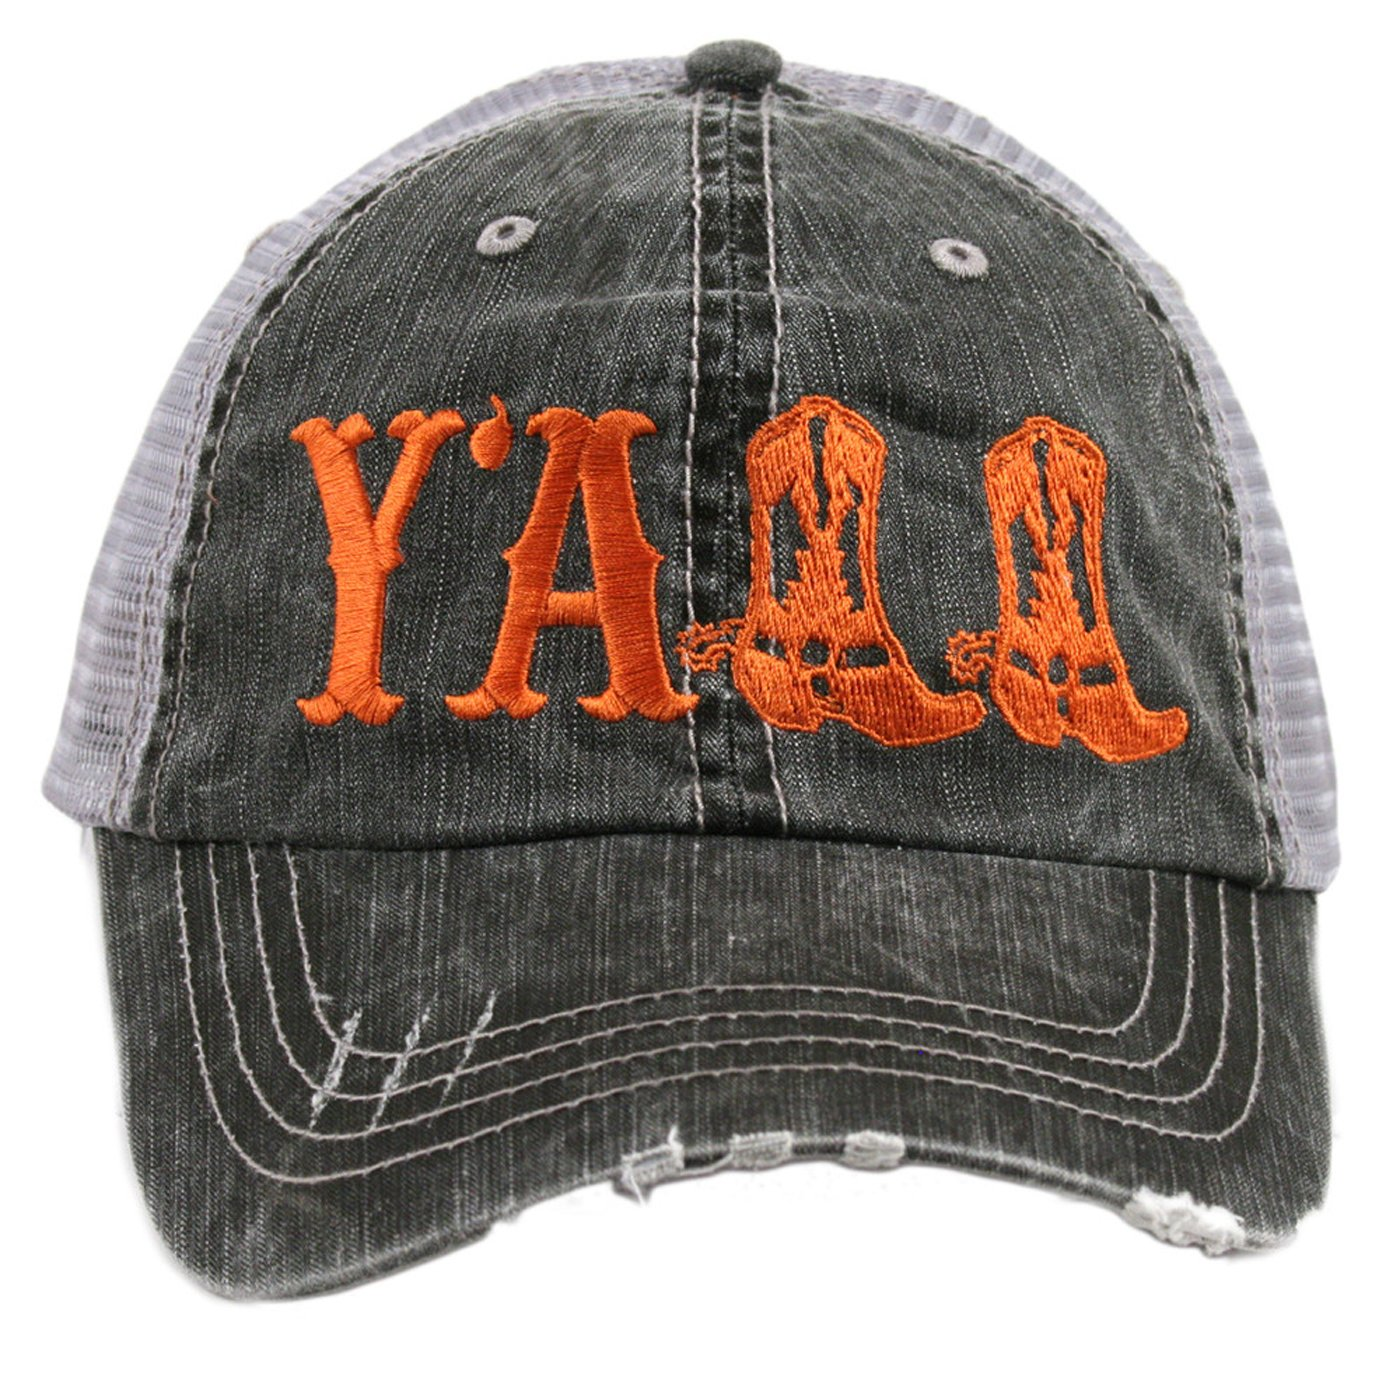 6138ca5d111 Y all Southern Country Women s Trucker Hat Cap by Katydid at Amazon Women s  Clothing store